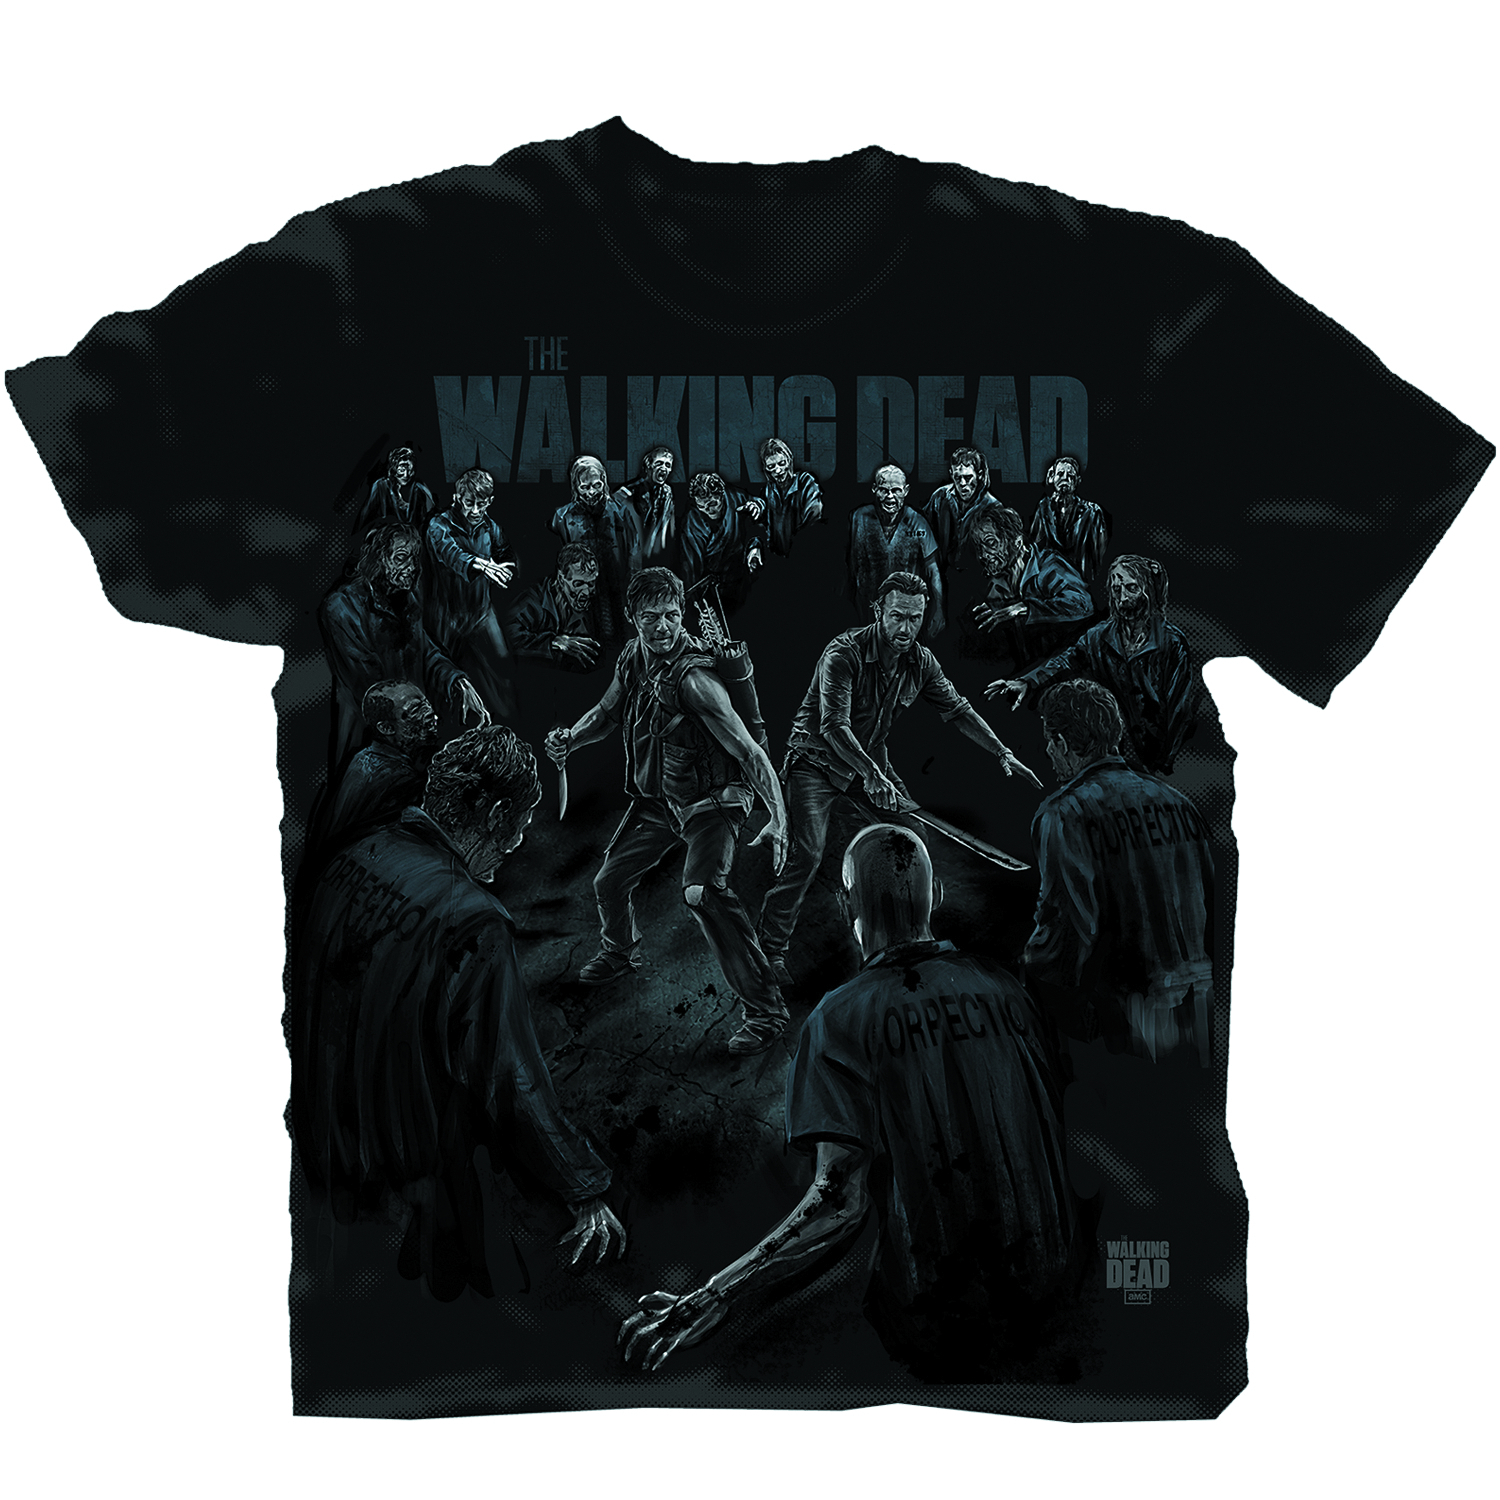 WALKING DEAD PROTECT THE GROUP BLK T/S XL